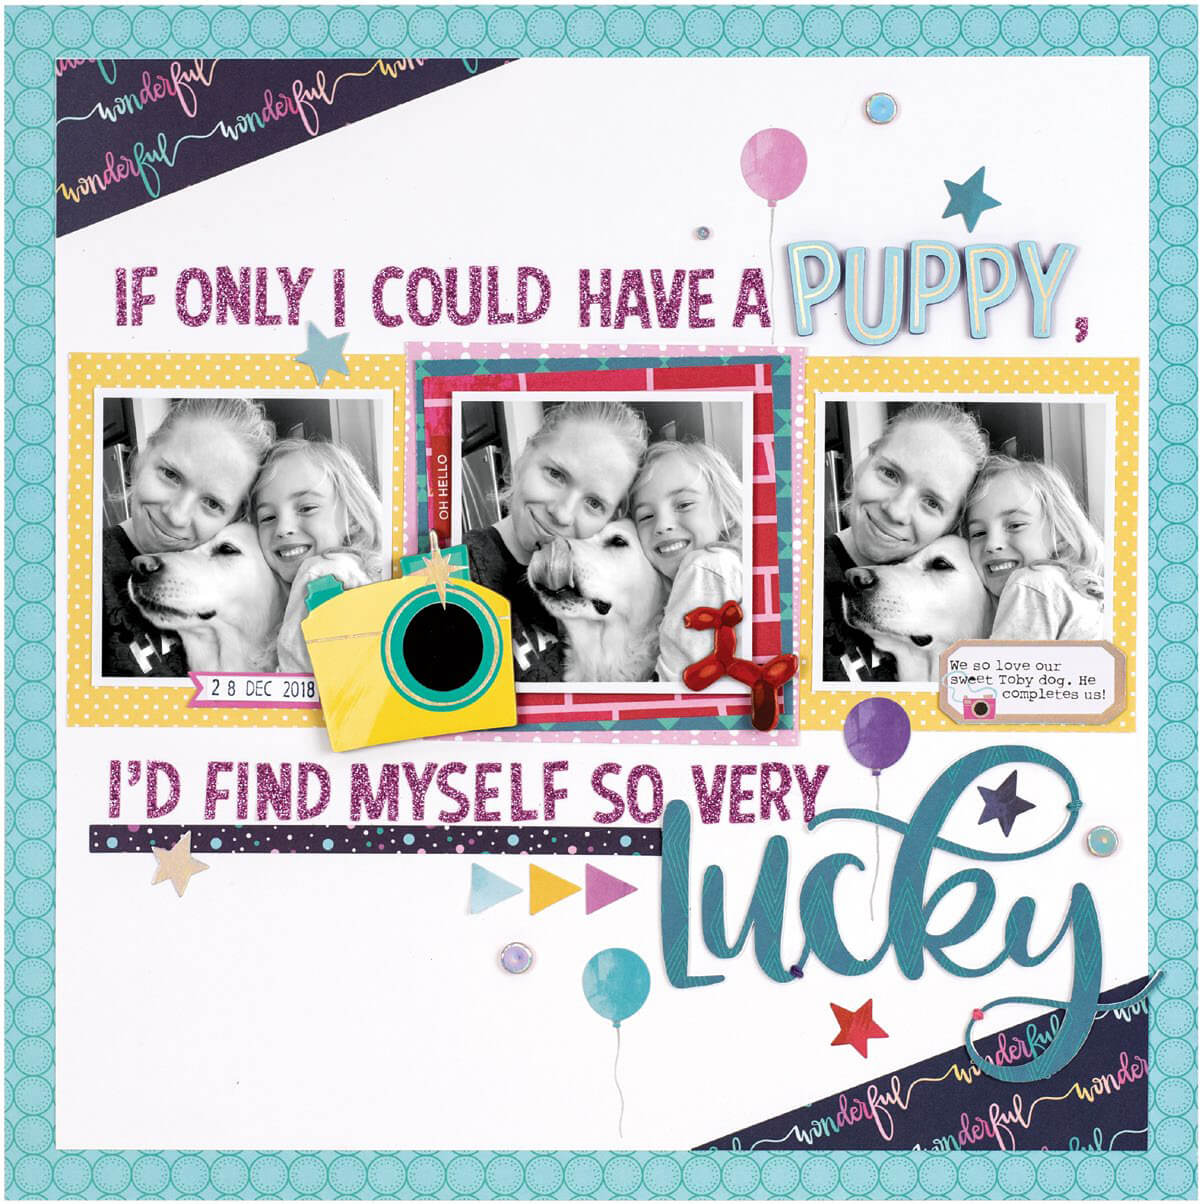 Scrapbook & Cards Today - Summer 2019 - So Very Lucky layout by Meghann Andrew